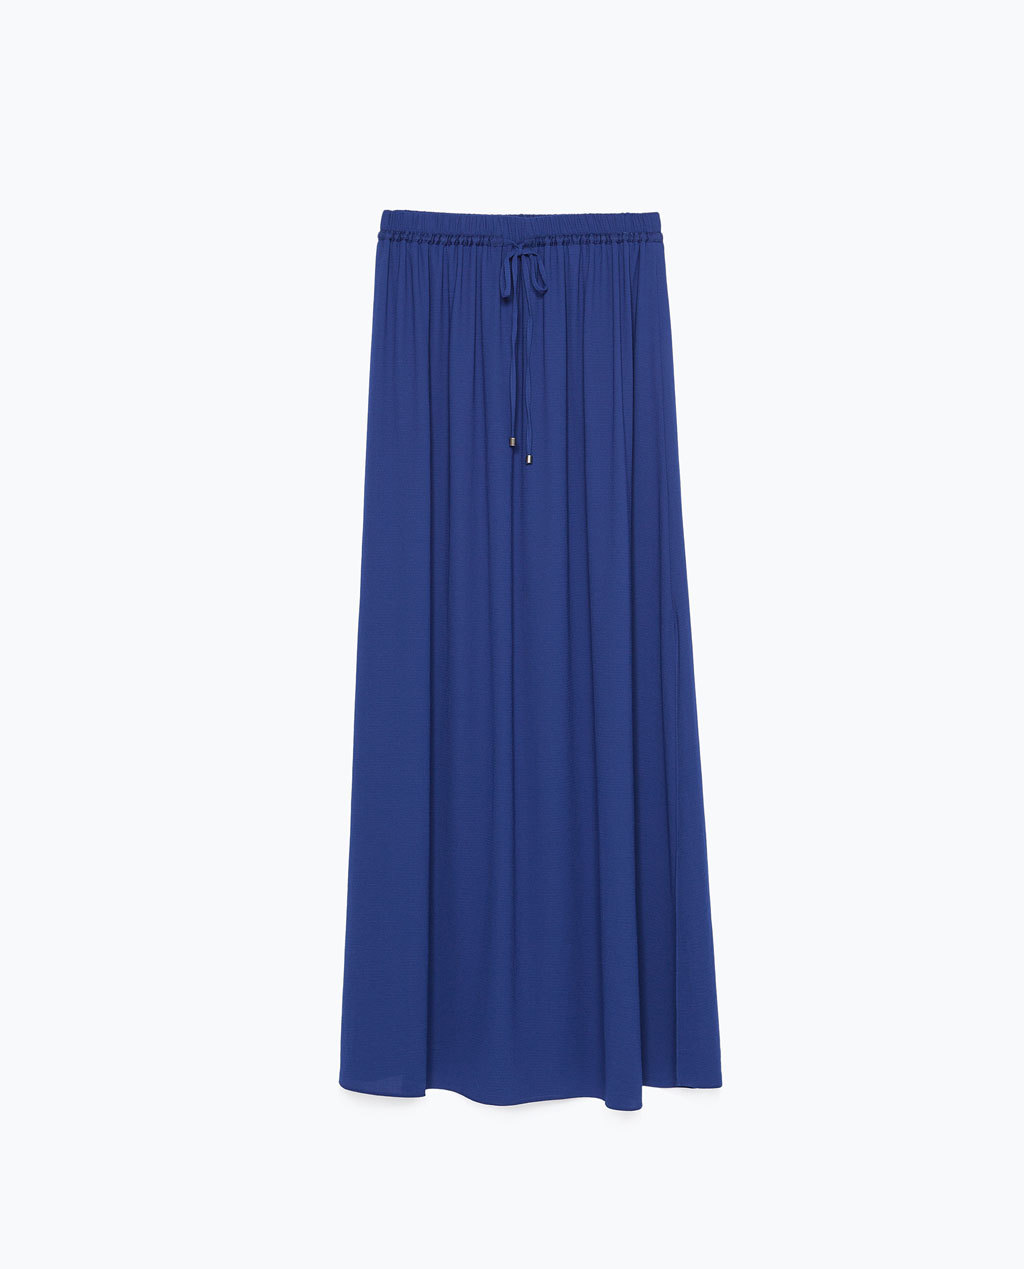 Long Skirt With Slits - pattern: plain; fit: loose/voluminous; waist: high rise; waist detail: belted waist/tie at waist/drawstring; predominant colour: royal blue; occasions: casual, holiday; length: floor length; style: maxi skirt; fibres: polyester/polyamide - 100%; texture group: sheer fabrics/chiffon/organza etc.; pattern type: fabric; season: s/s 2015; wardrobe: highlight